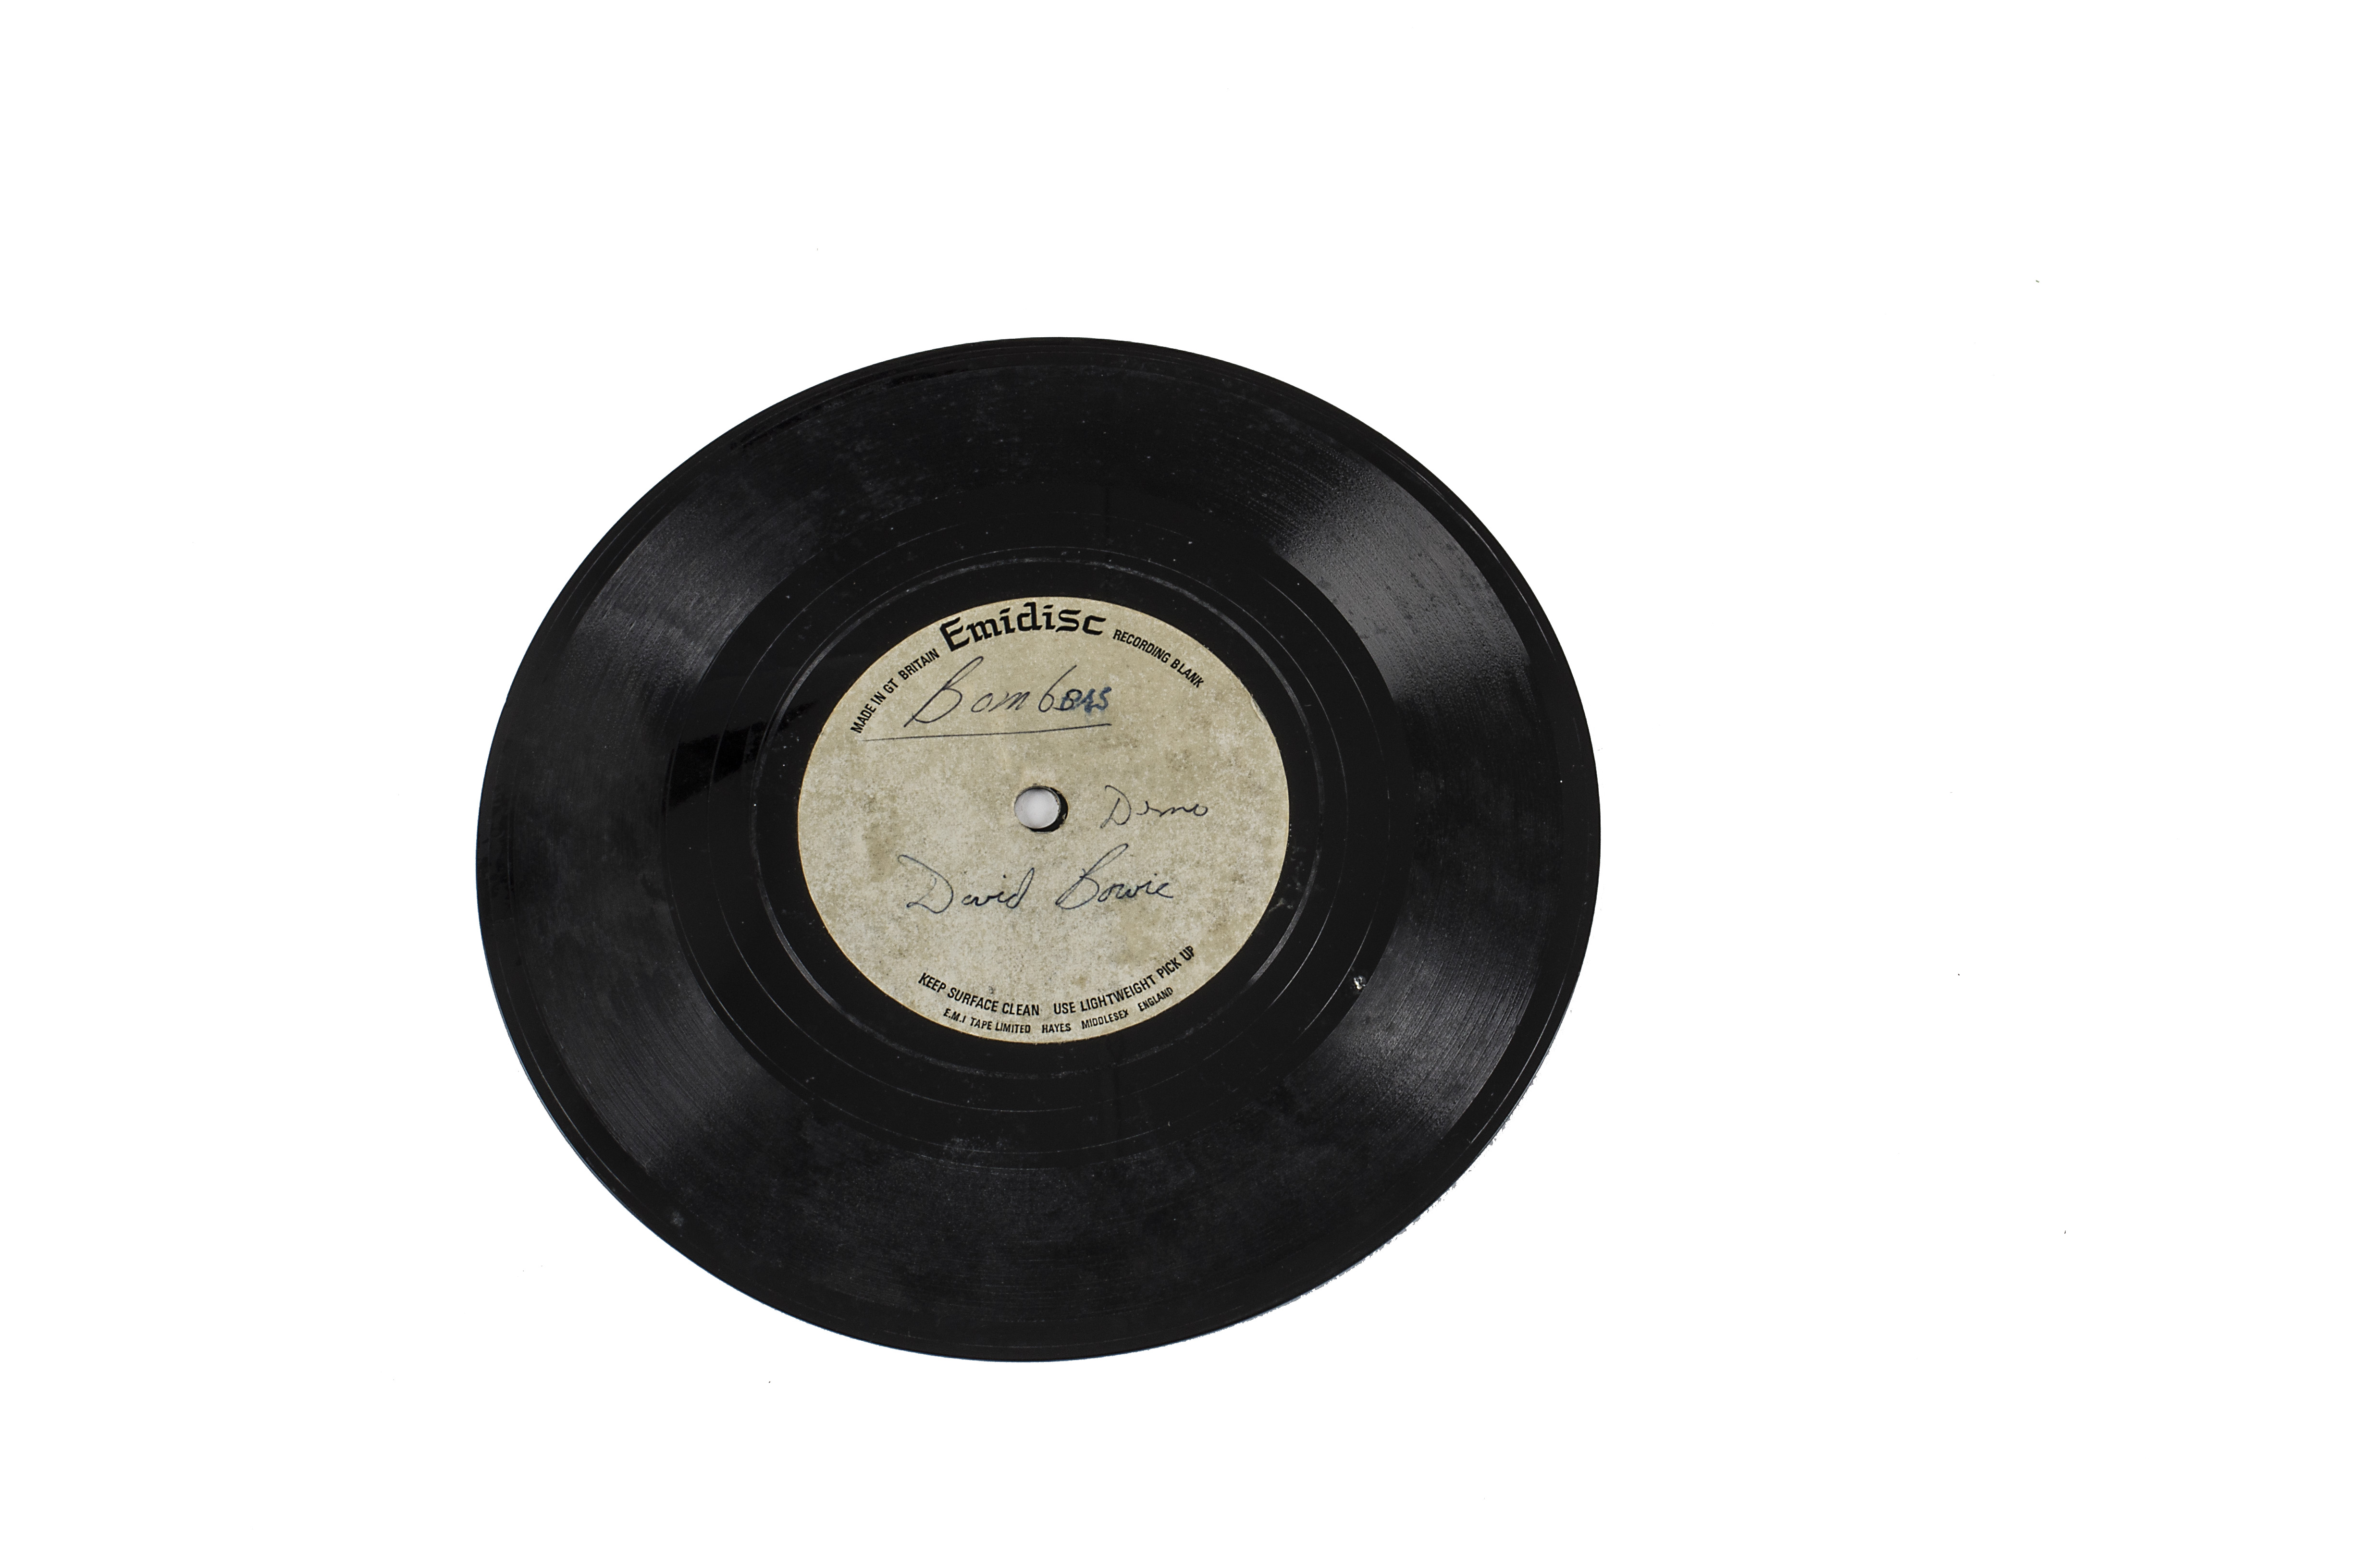 """Lot 229 - David Bowie Acetate, Changes b/w Bombers - Double-Sided UK 7"""" Mono Acetate - Very different"""